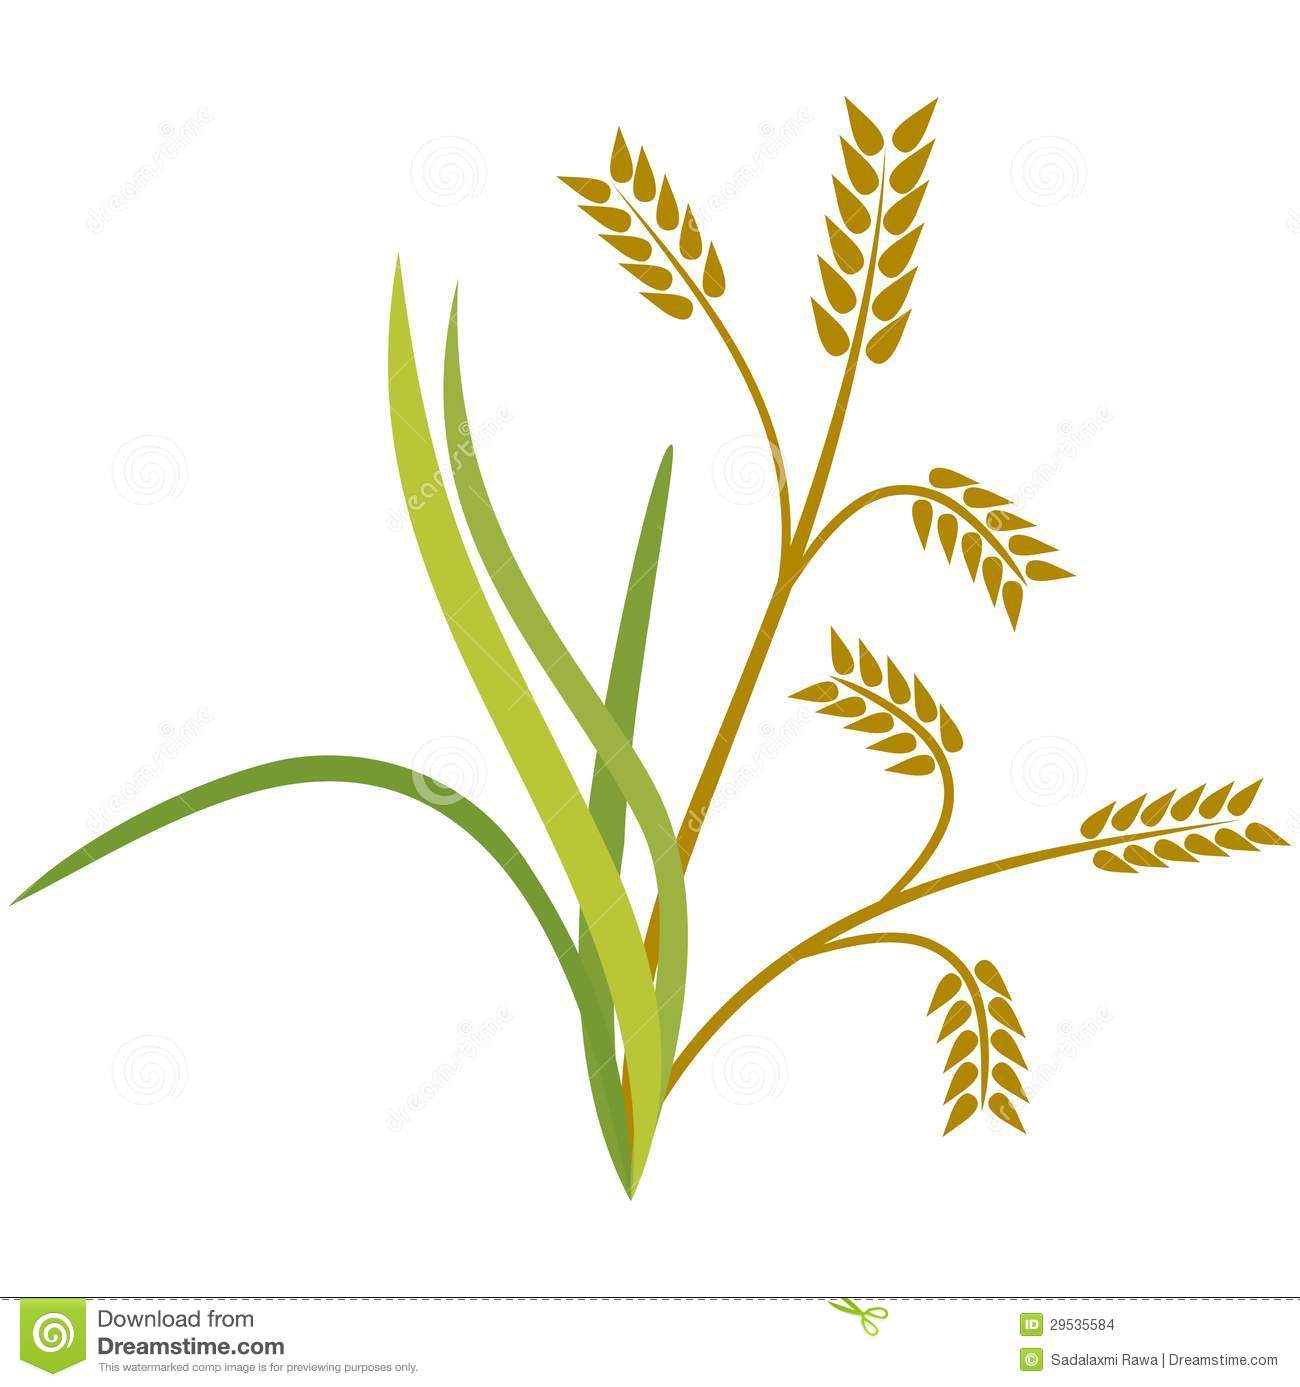 Cereal clipart rice plant.  collection of tree